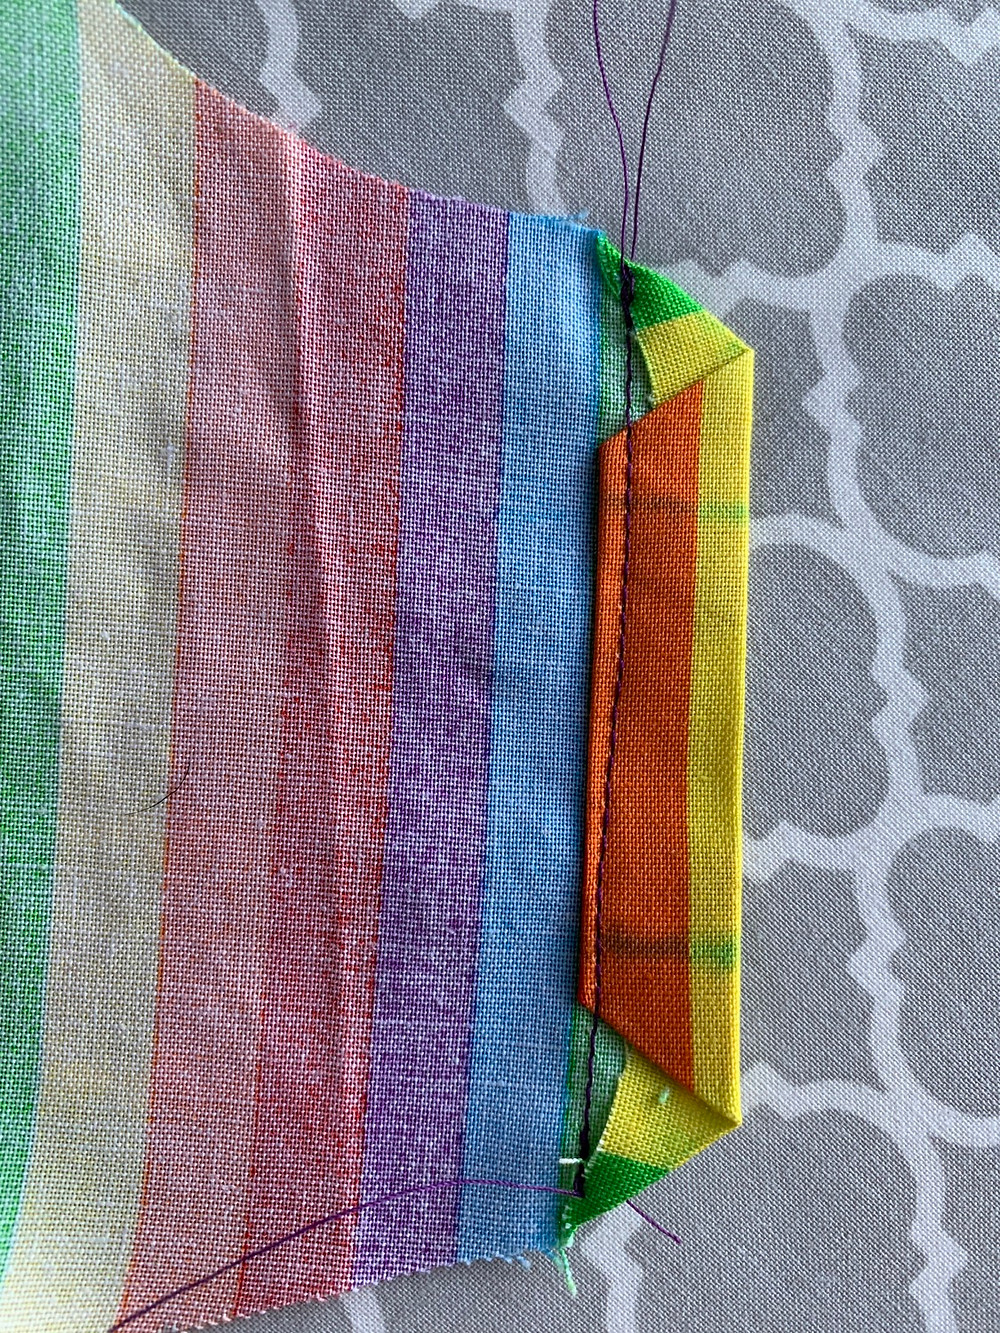 On the Outside pieces, stitch close to the previously pressed edge to leave enough room for the elastic.